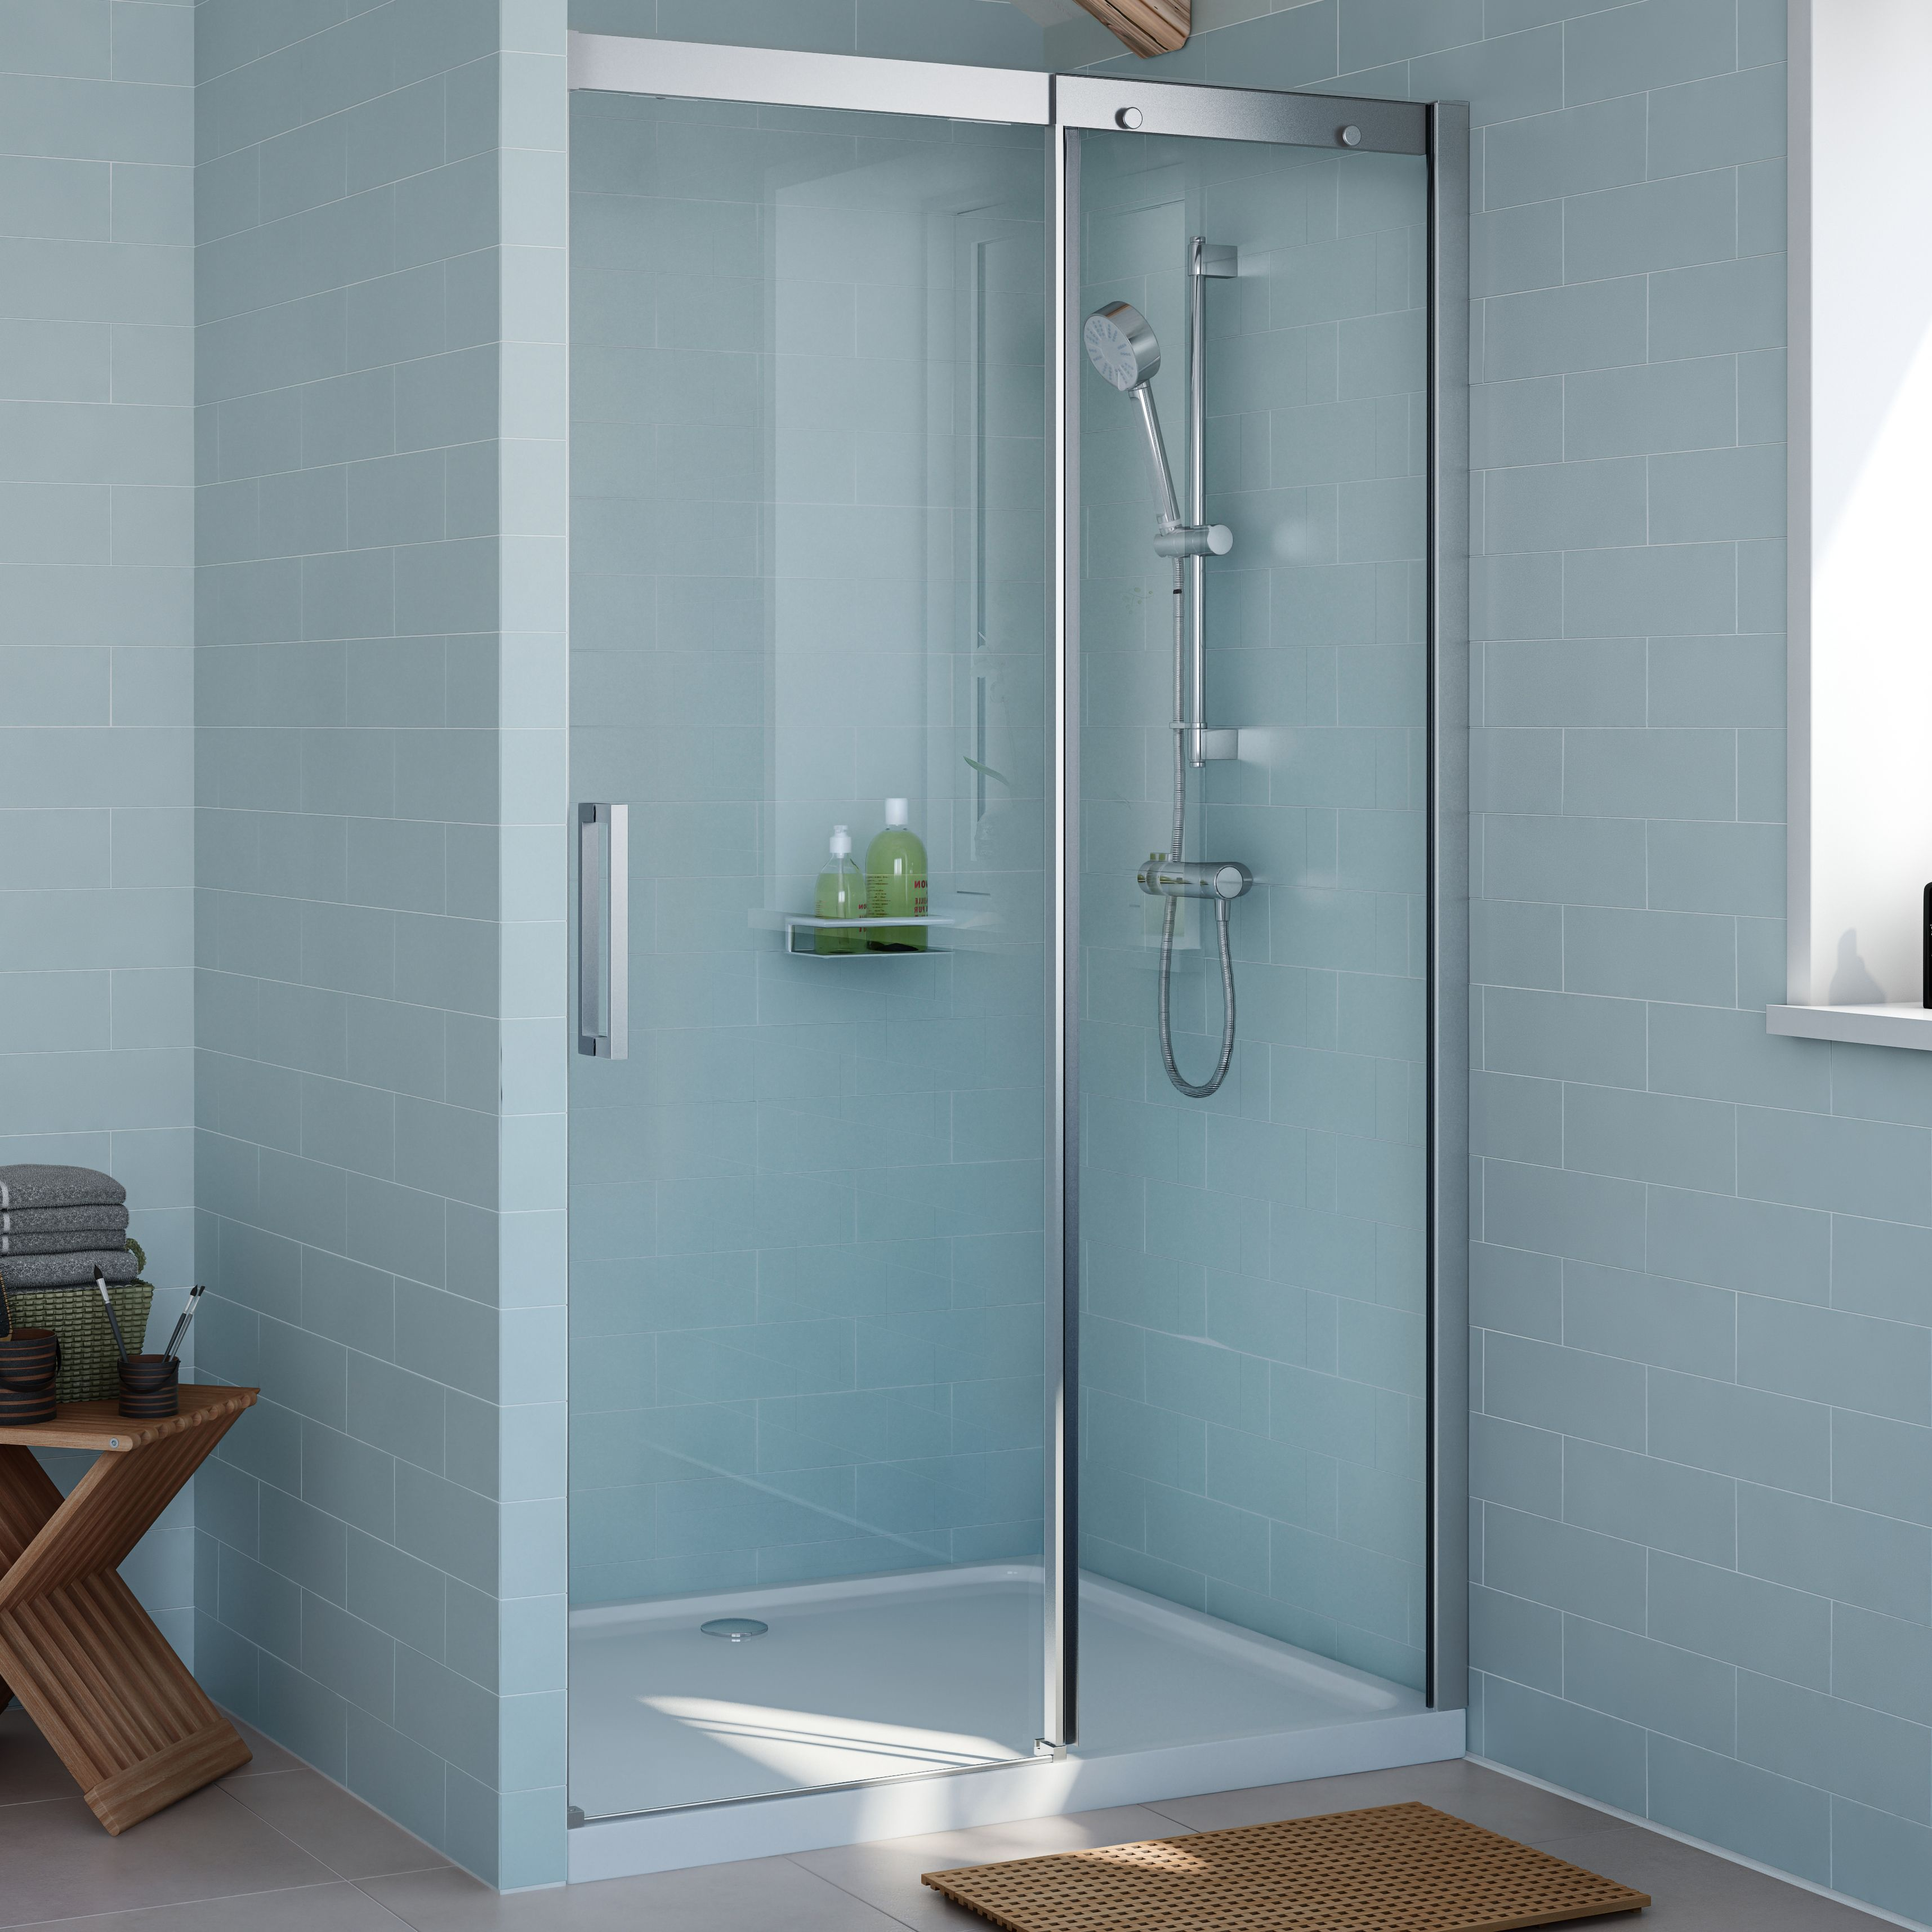 Cooke & Lewis Carmony Shower door with Single sliding soft close ...